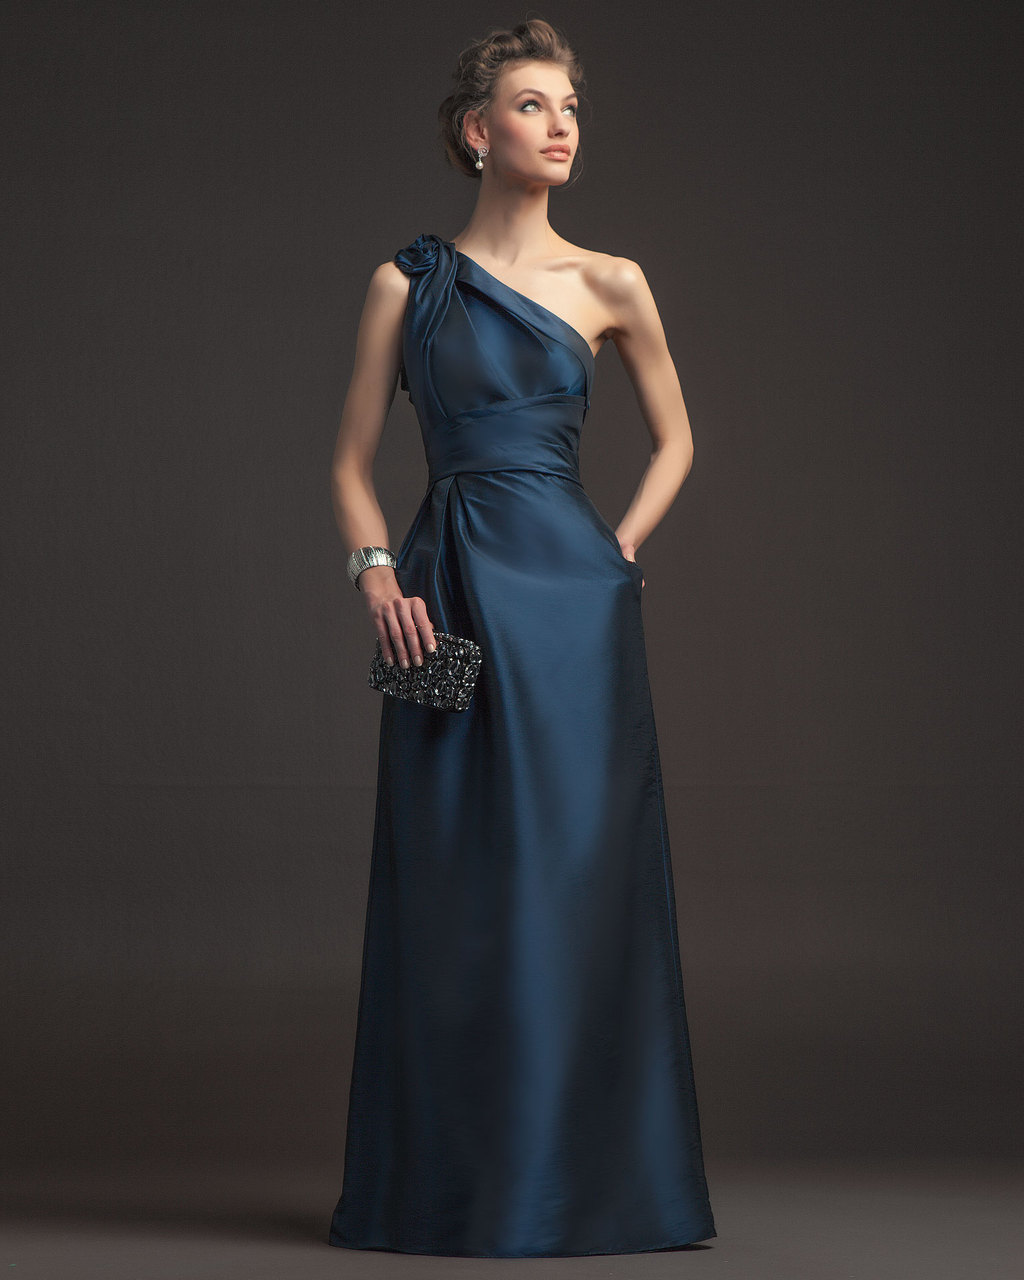 Gorgeous 2014 bridesmaid dresses from aire barcelona for Midnight blue wedding dress